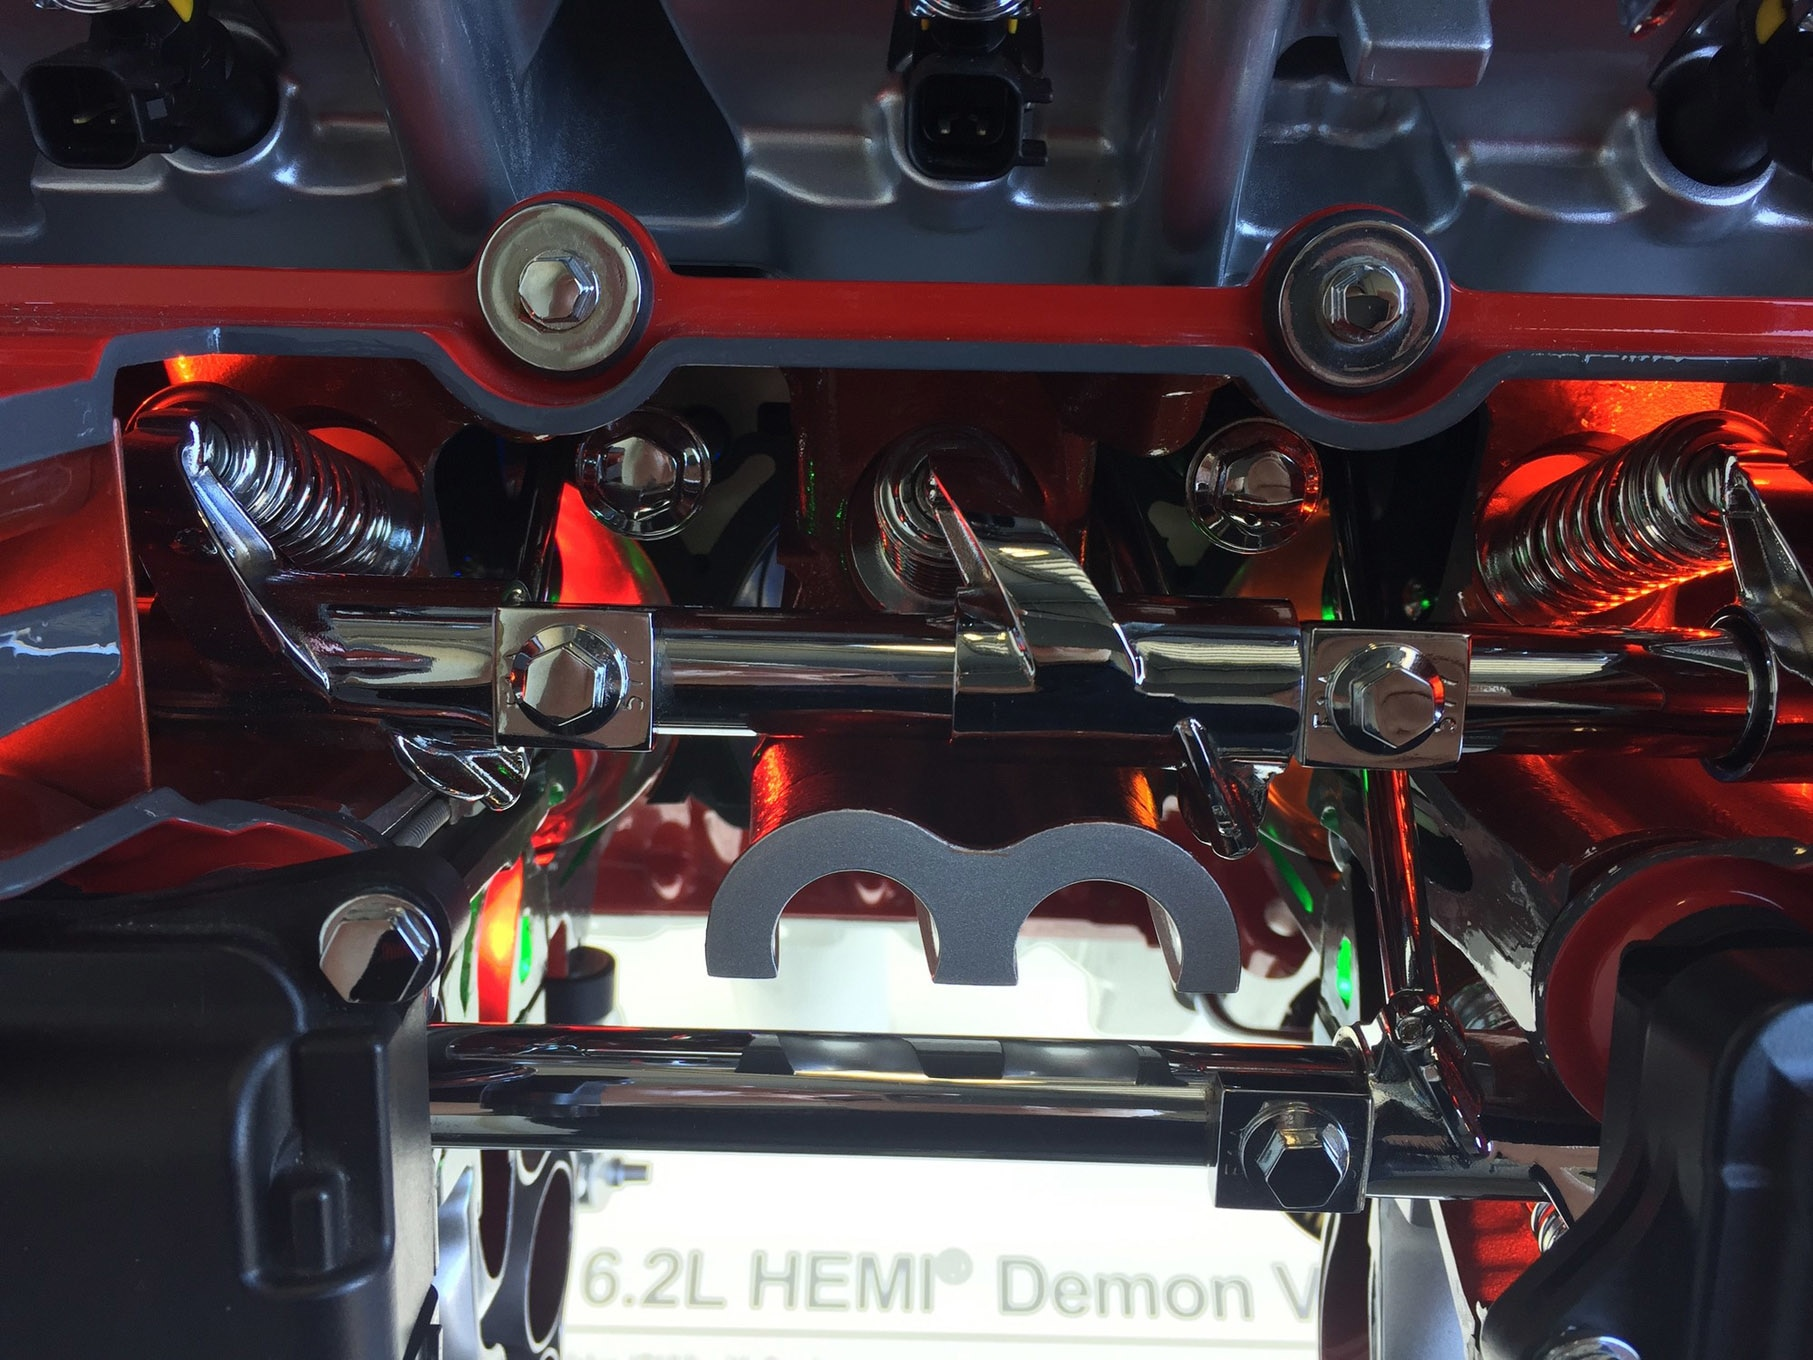 Dodge Demon - 2017 - HEMI engine inside - photo via hotrod.com